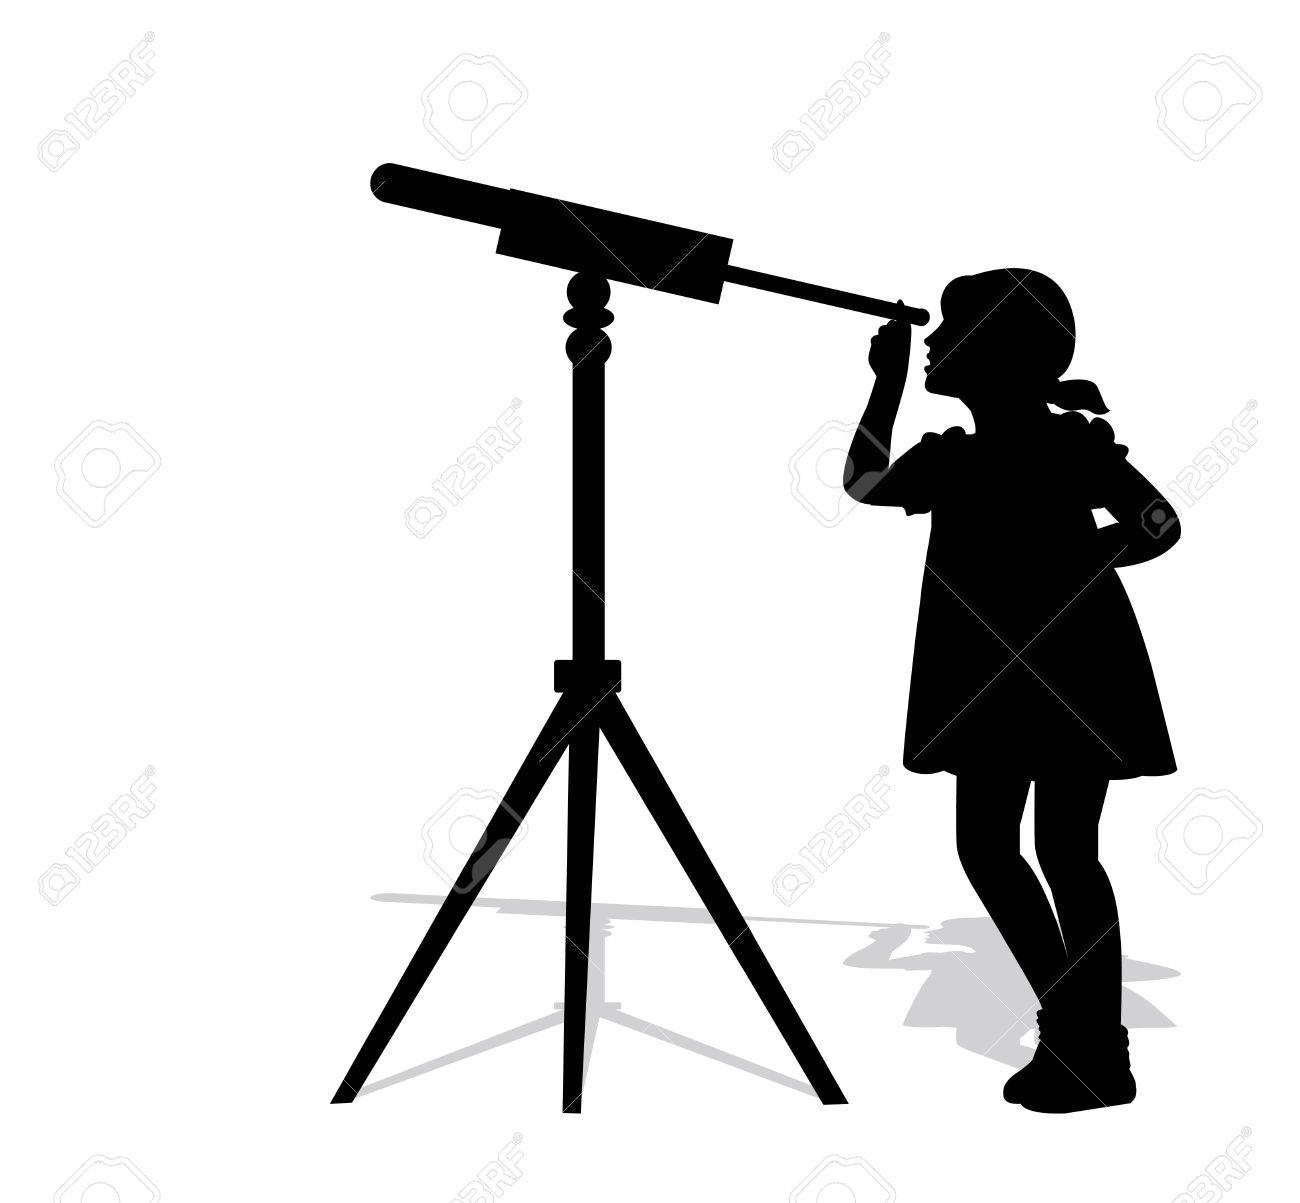 silhouette of girl looking through a telescope.